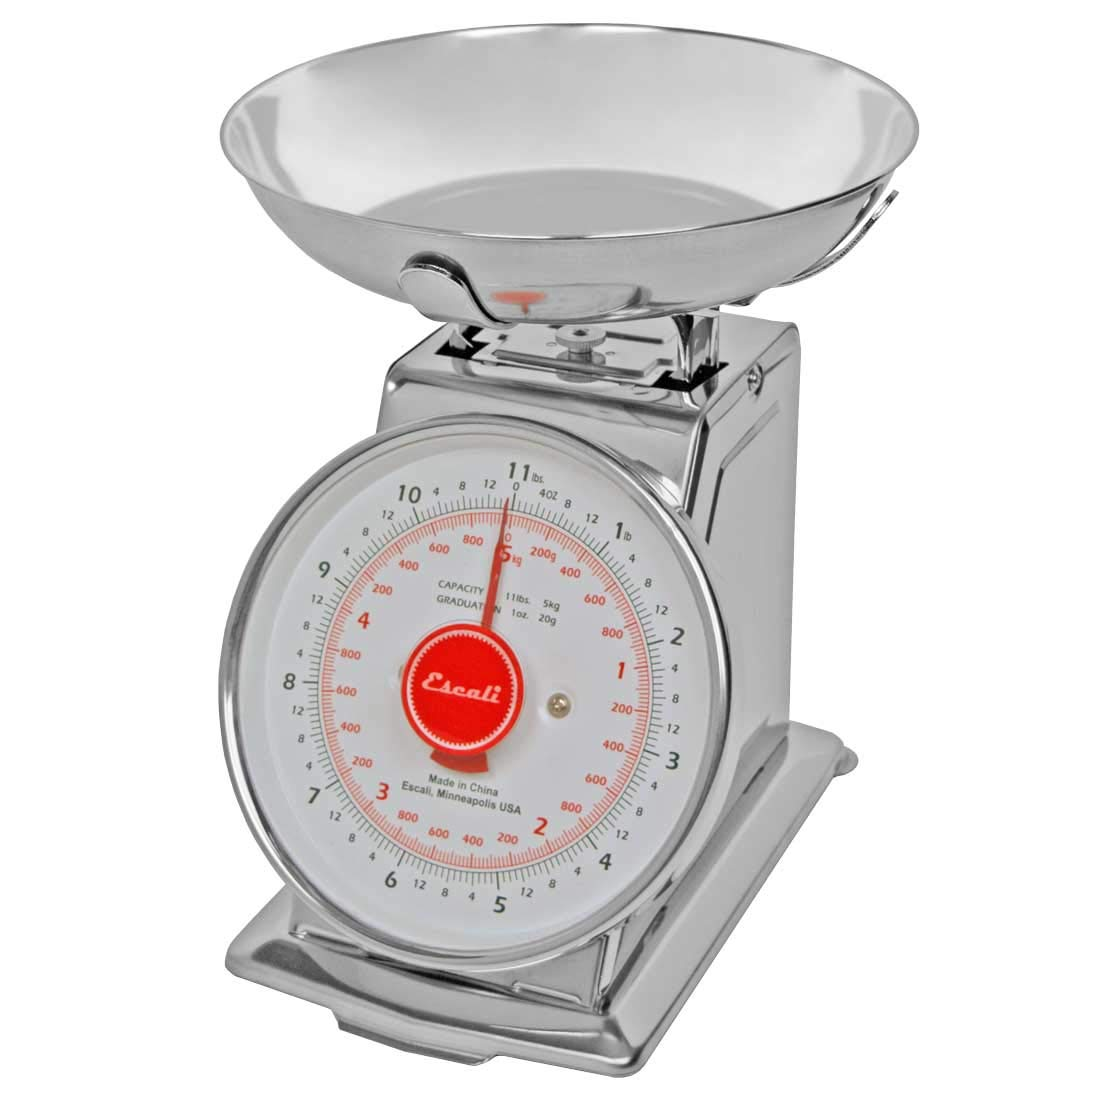 Escali DS115B Mercado Retro Classic Mechanical Dial Stainless Steel Scale, Removeable Bowl, Tare Functionality, 11lb Capacity, Stainless by Escali